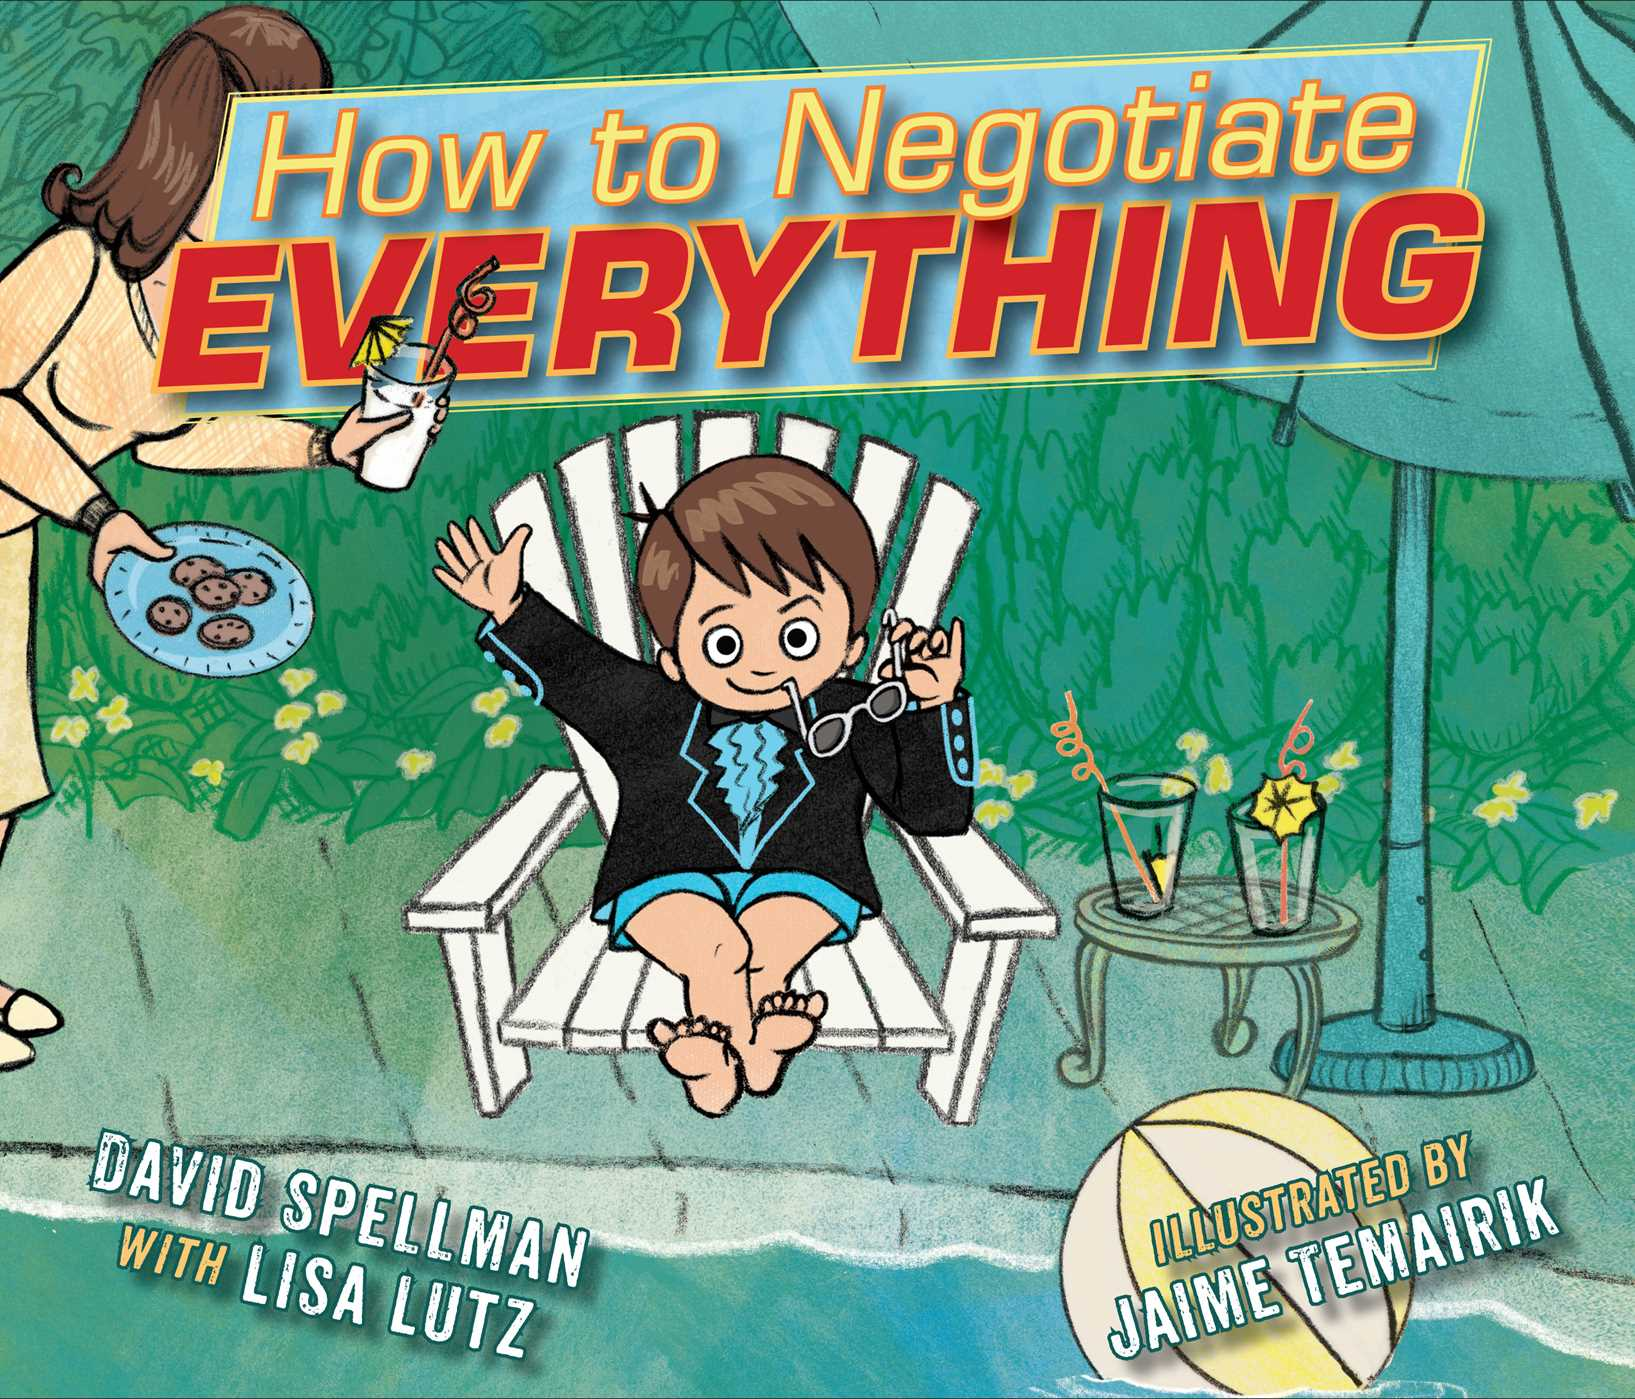 How to negotiate everything 9781442451209 hr